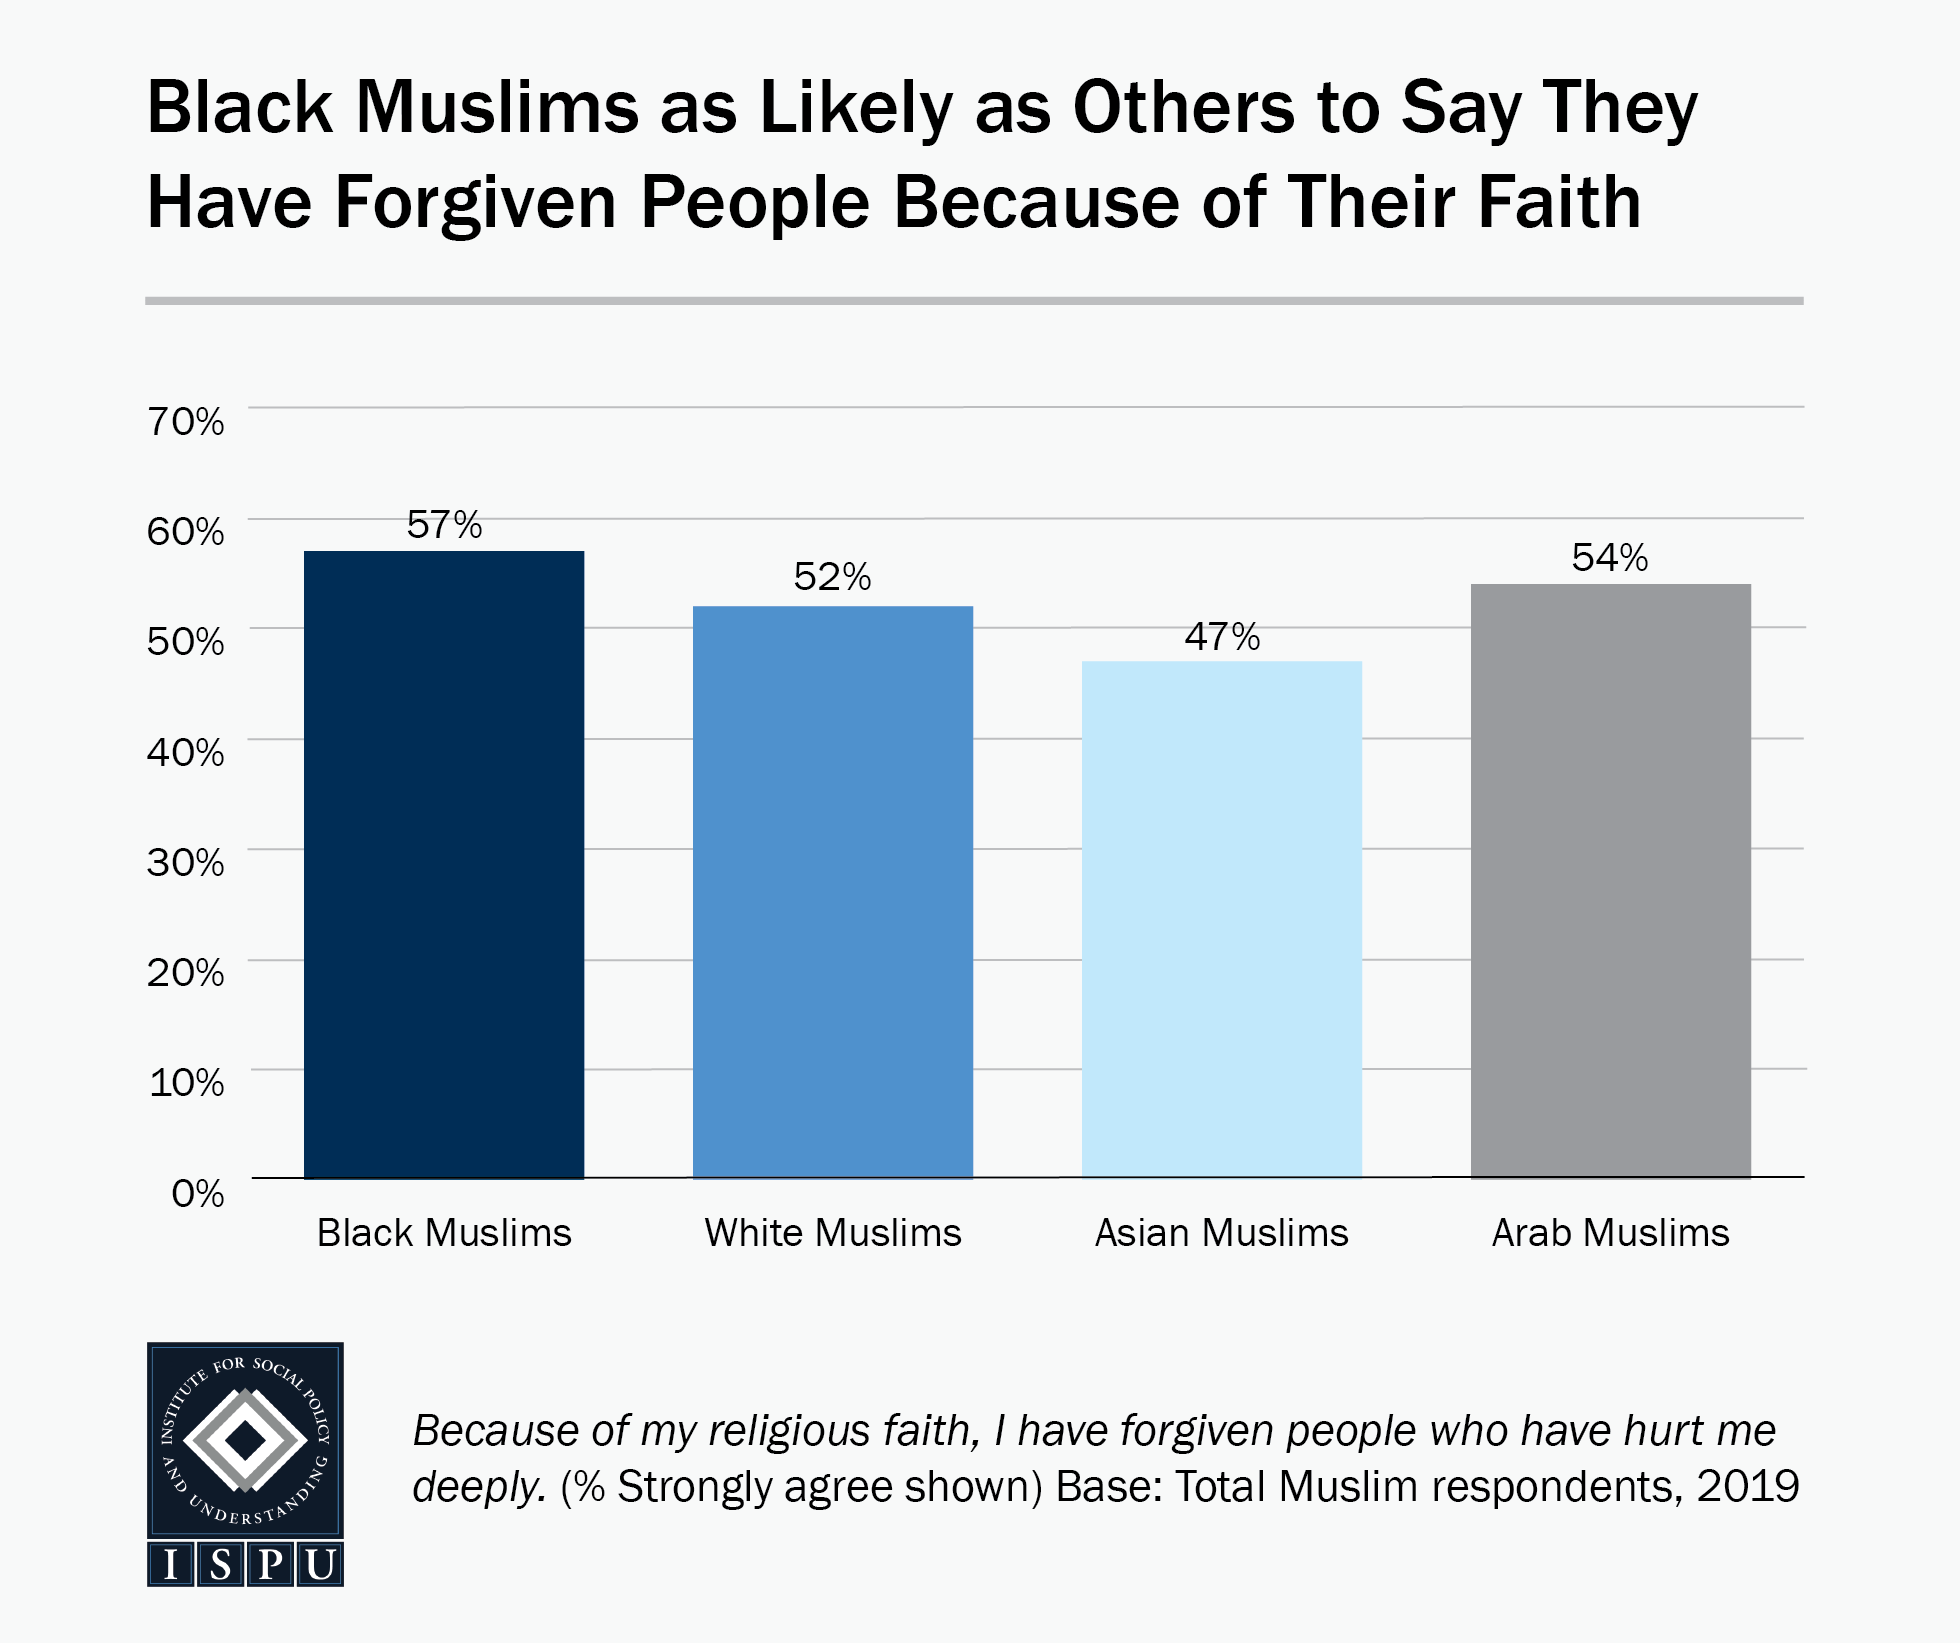 Bar graph showing that Black Muslims (57%) are as likely as others (47%-54%) to say they have forgiven people because of their faith